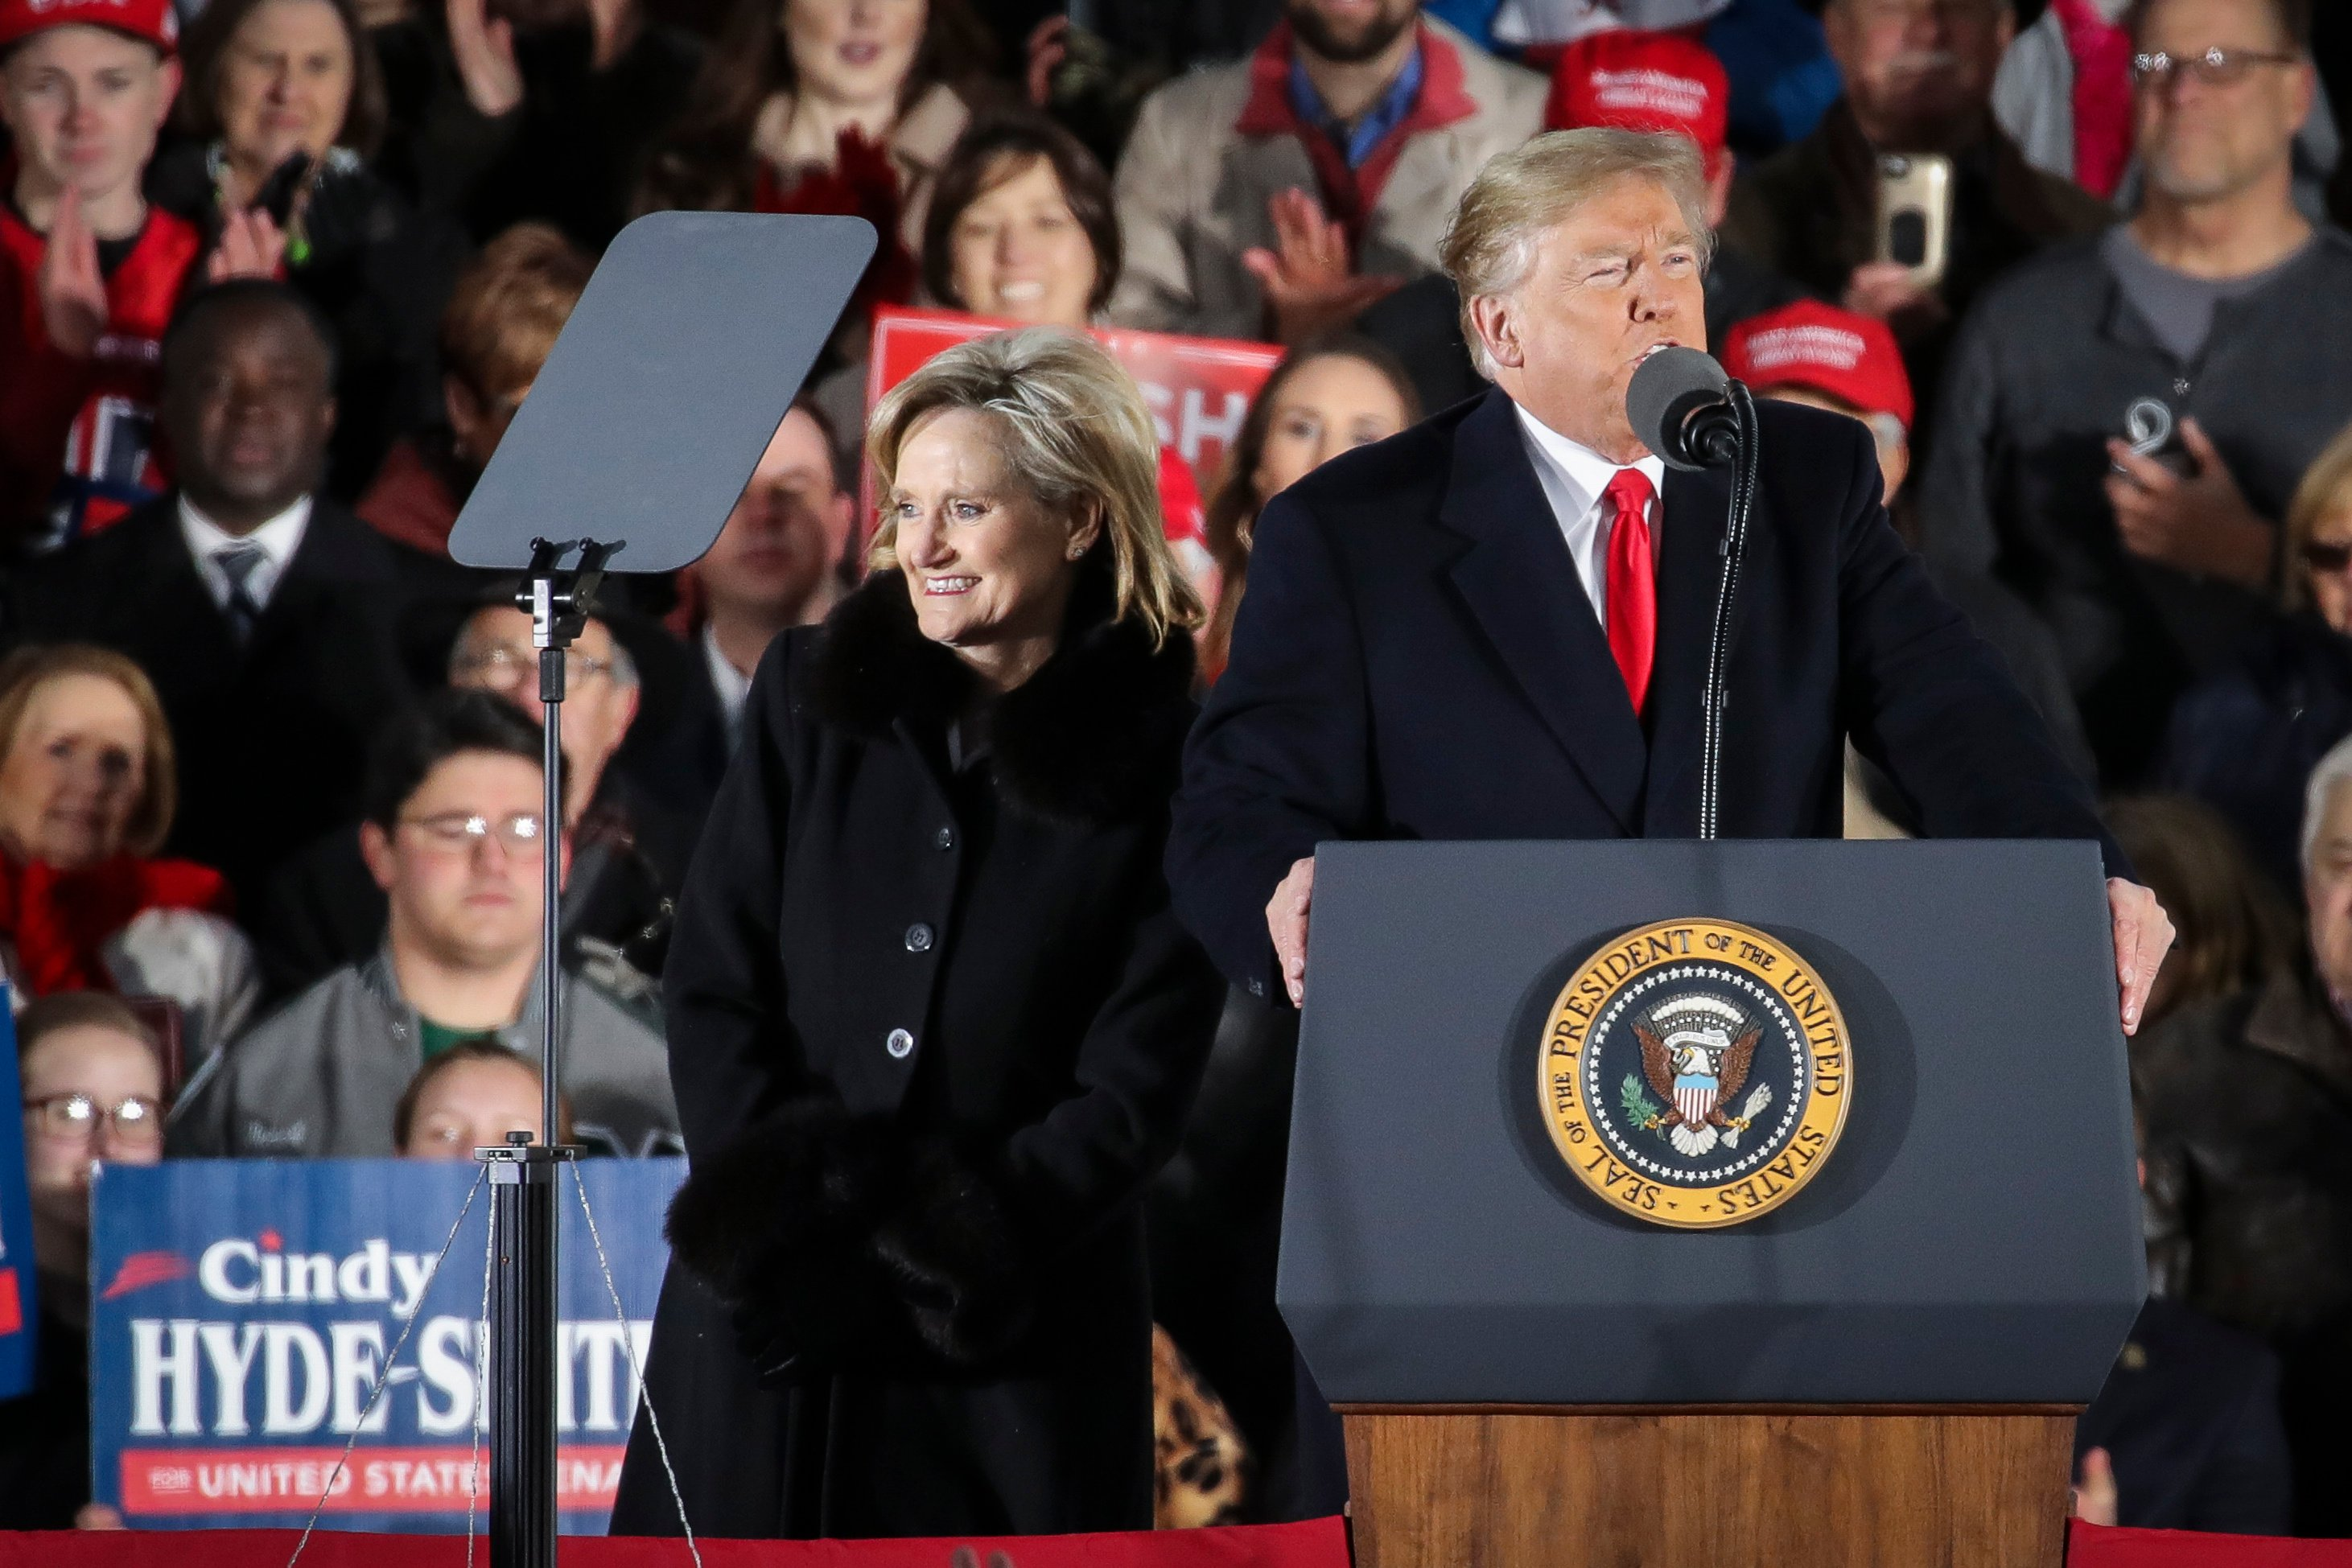 Republican candidate for U.S. Senate Cindy Hyde-Smith is introduced by President Donald Trump during a rally at the Tupelo Regional Airport, November 26, 2018 in Tupelo, Mississippi. (Drew Angerer/Getty Images)